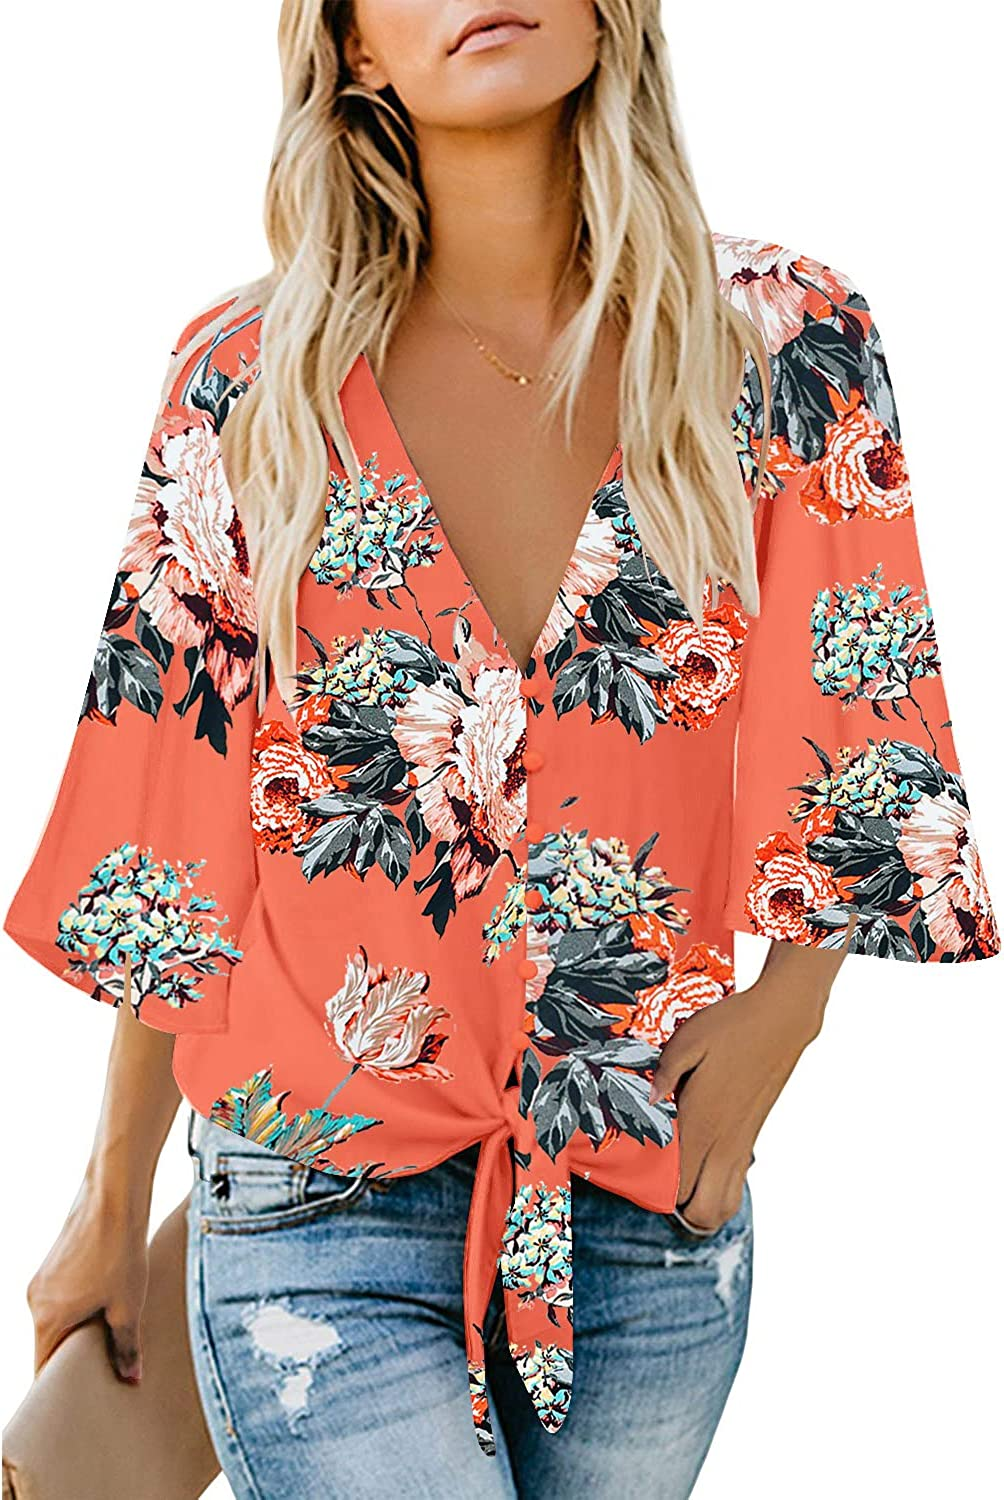 luvamia Women's V Neck Tops 3/4 Sleeve Tie Knot Floral Blouses Button Down Shirts